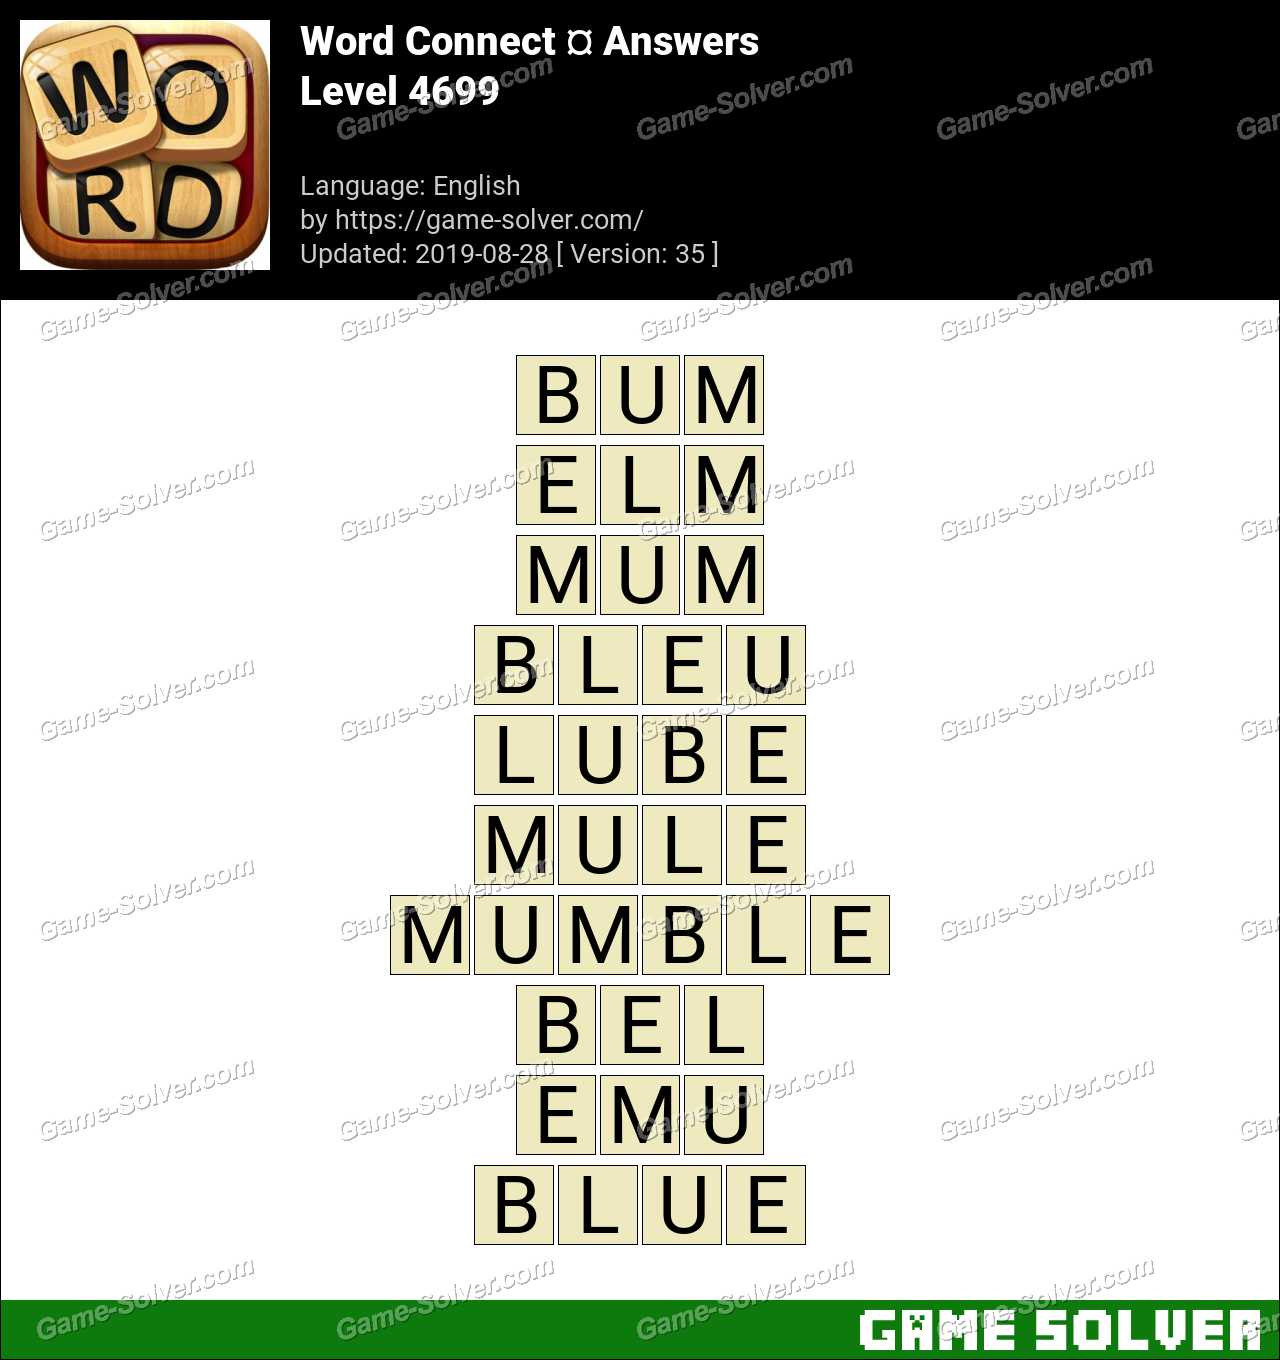 Word Connect Level 4699 Answers